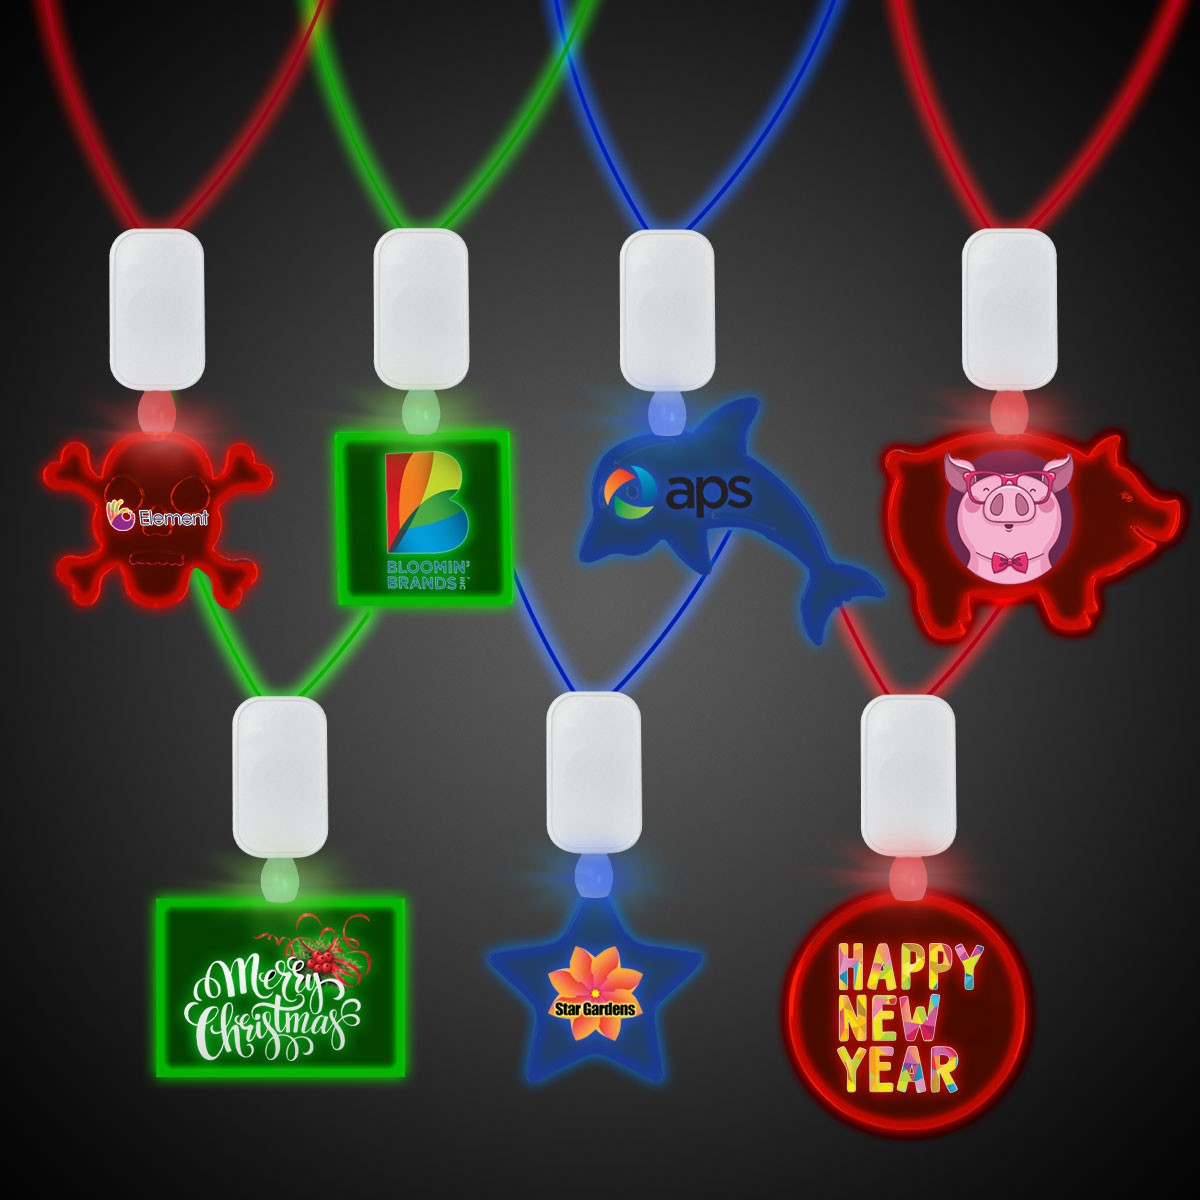 Clear Plastic Necklace with Plastic Medallion -Variety of LED Colors